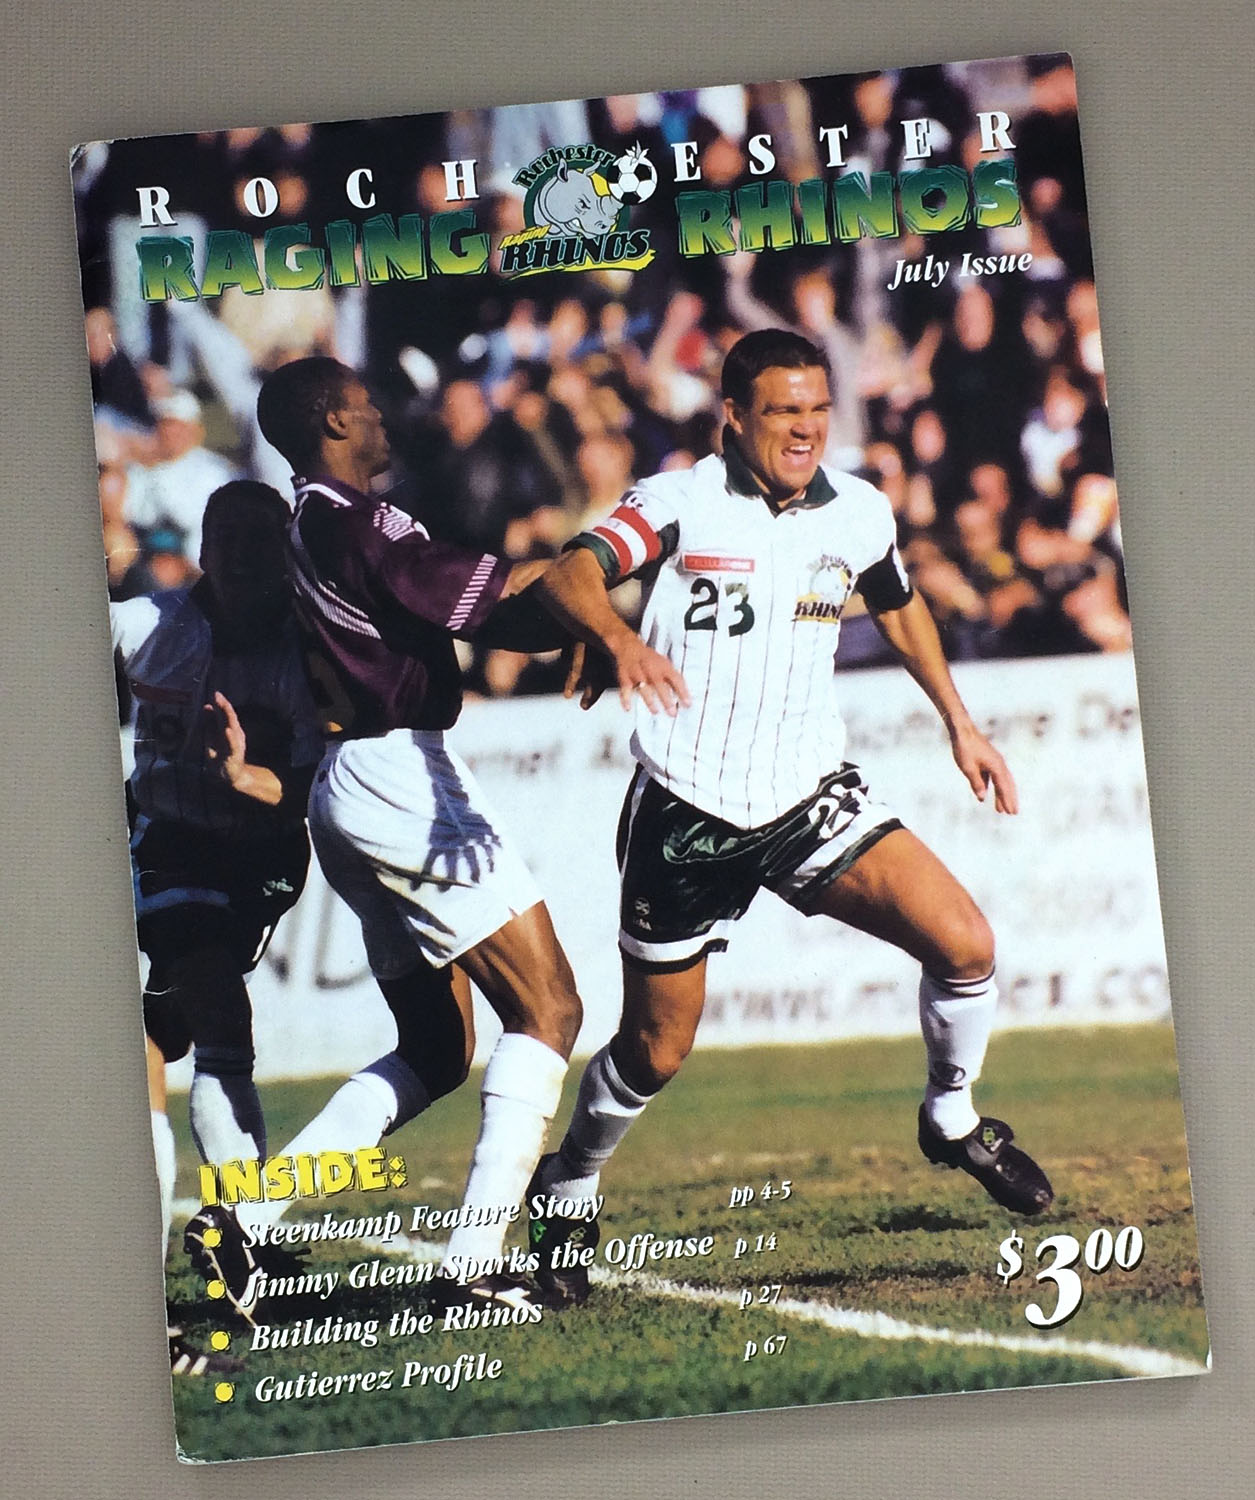 Rochester Raging Rhinos 1997 Program